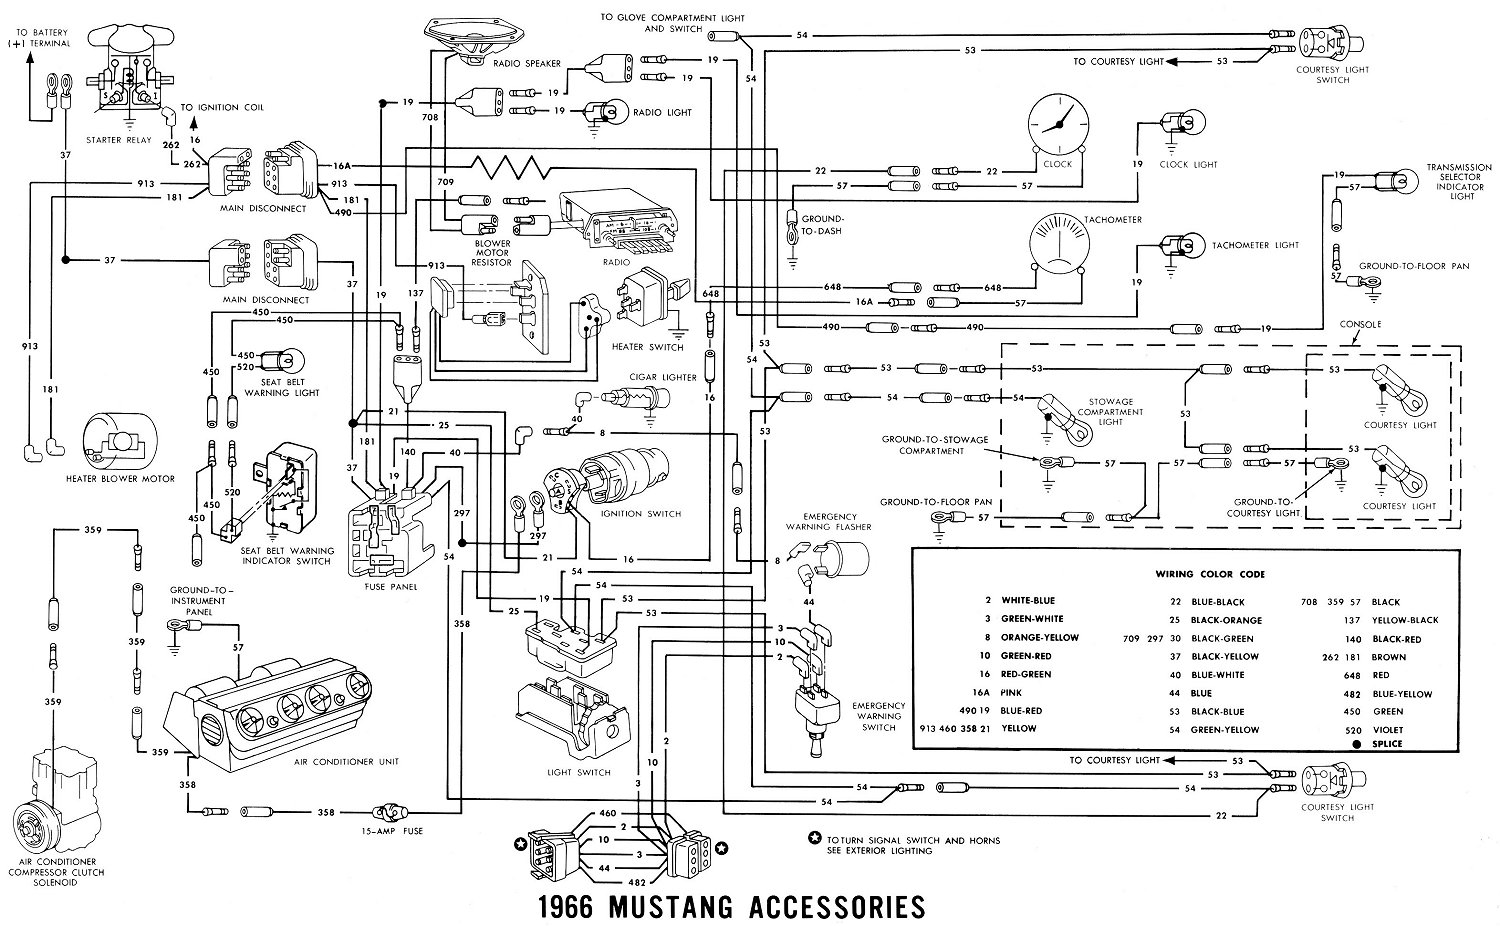 1963 c10 ignition switch schematic  1963  free engine